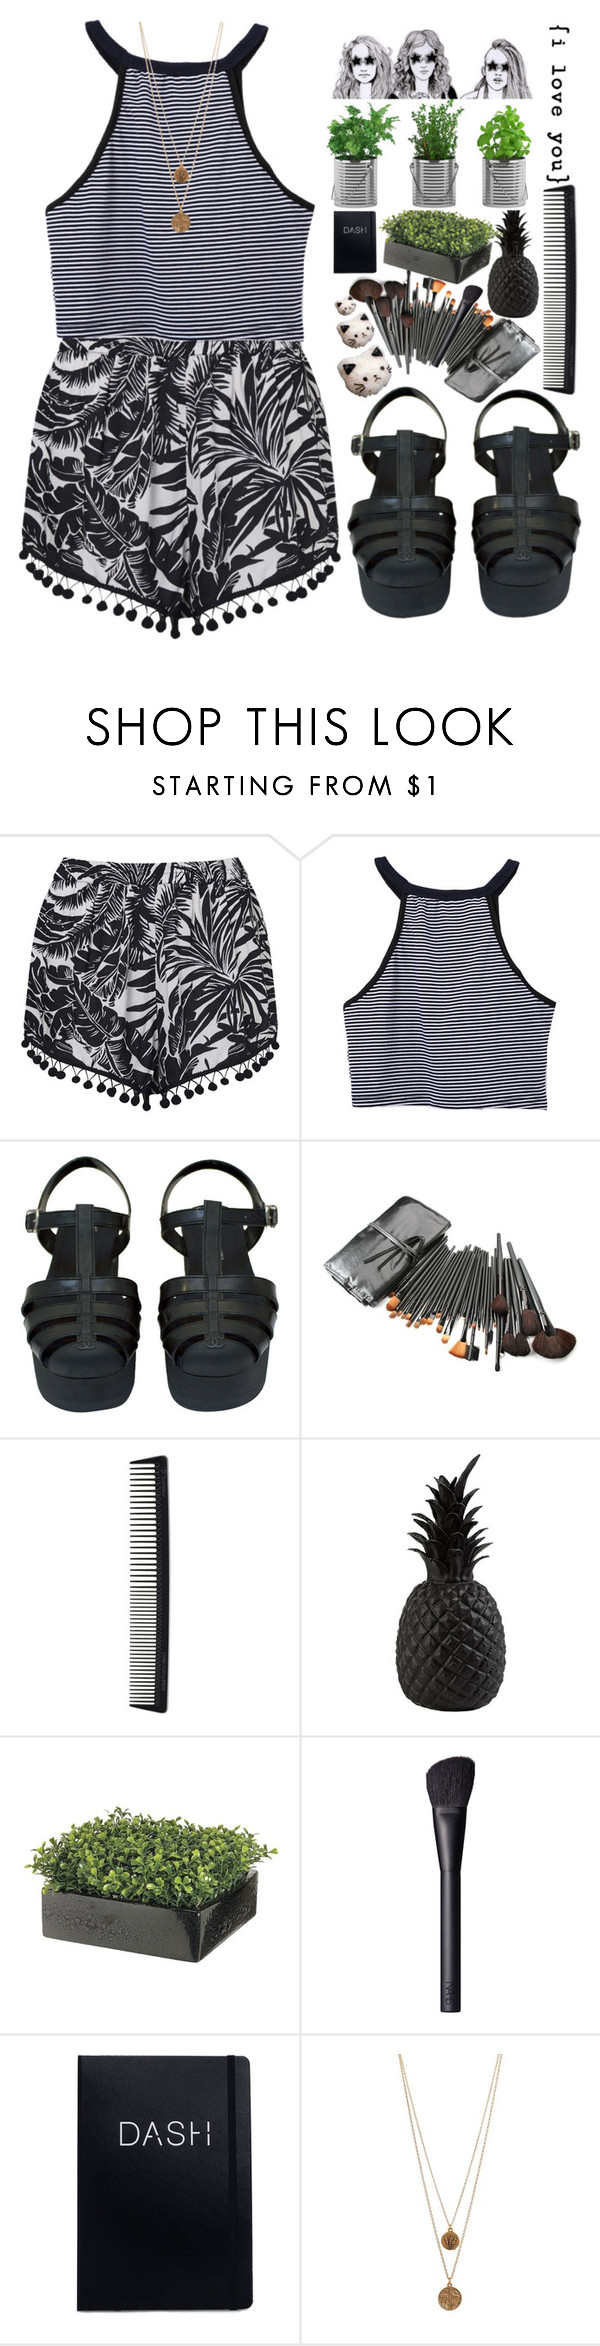 """""""#149"""" by flowersblood ❤ liked on Polyvore featuring Topshop, Chanel, T3, Pols Potten, NARS Cosmetics, Bee Charming and Too Late"""